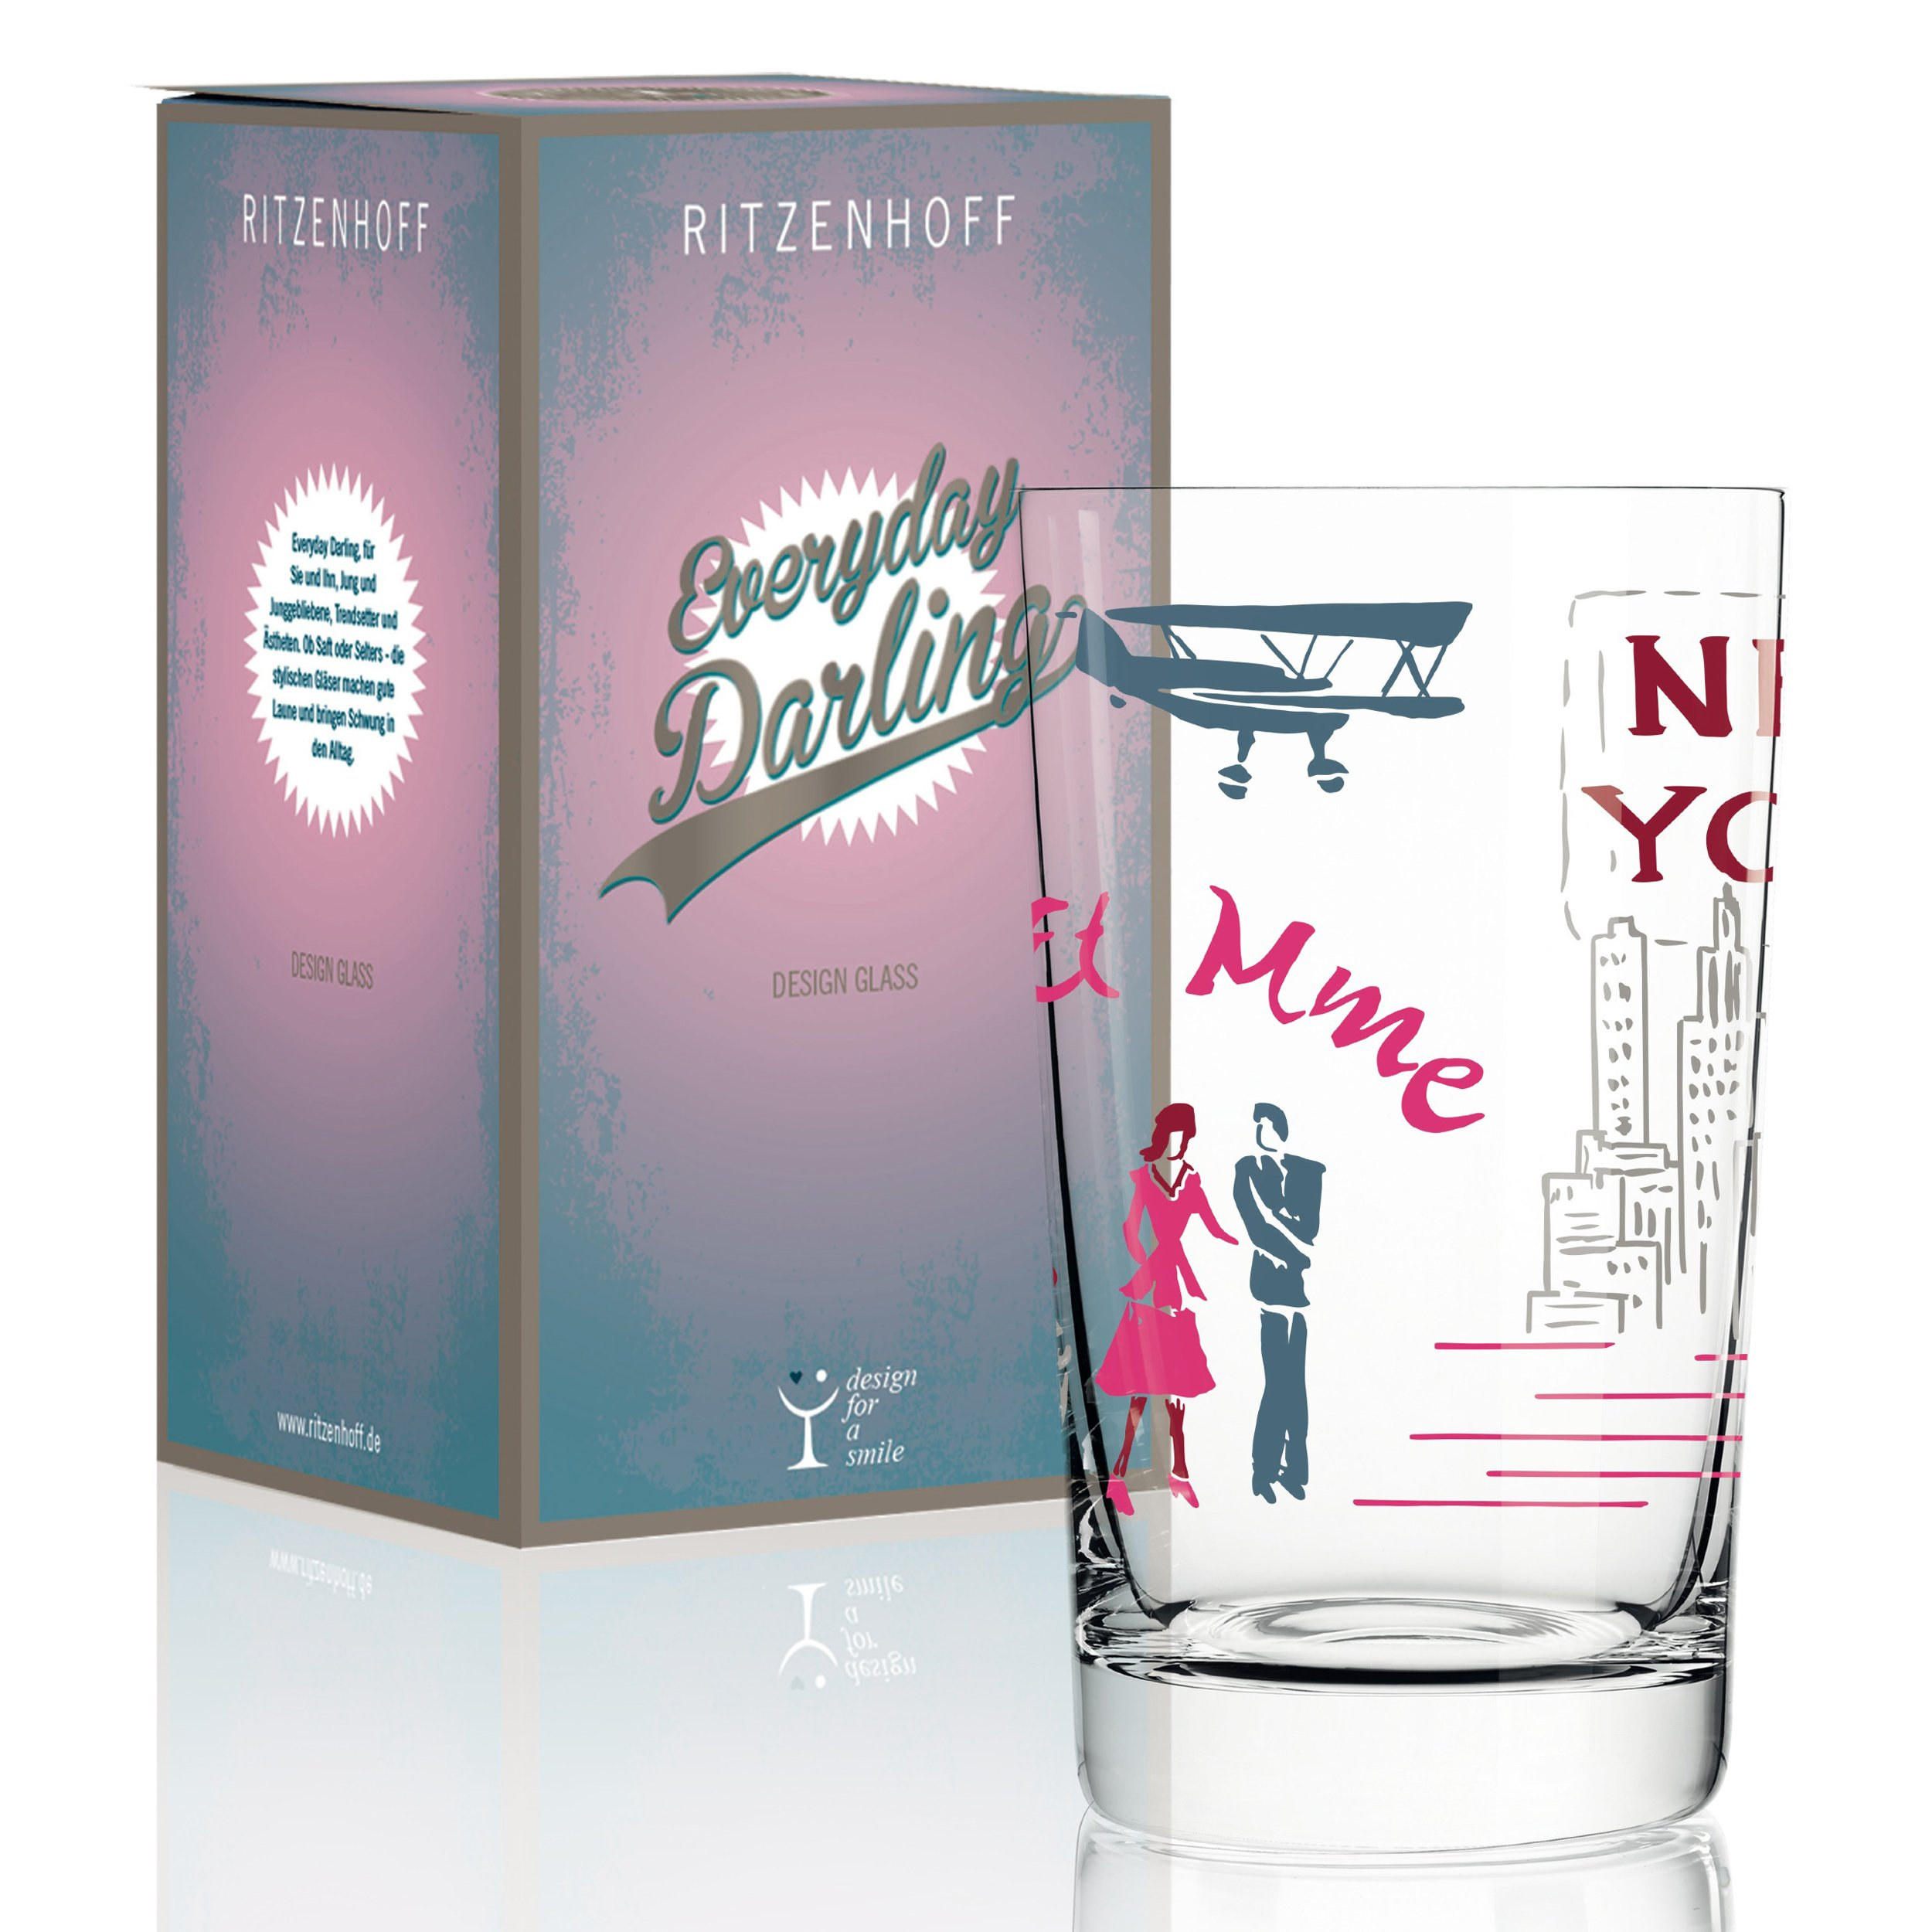 RITZENHOFF Everyday Darling Soft Drink Glass by Dominique Tage 300ml with Trendy Decorations